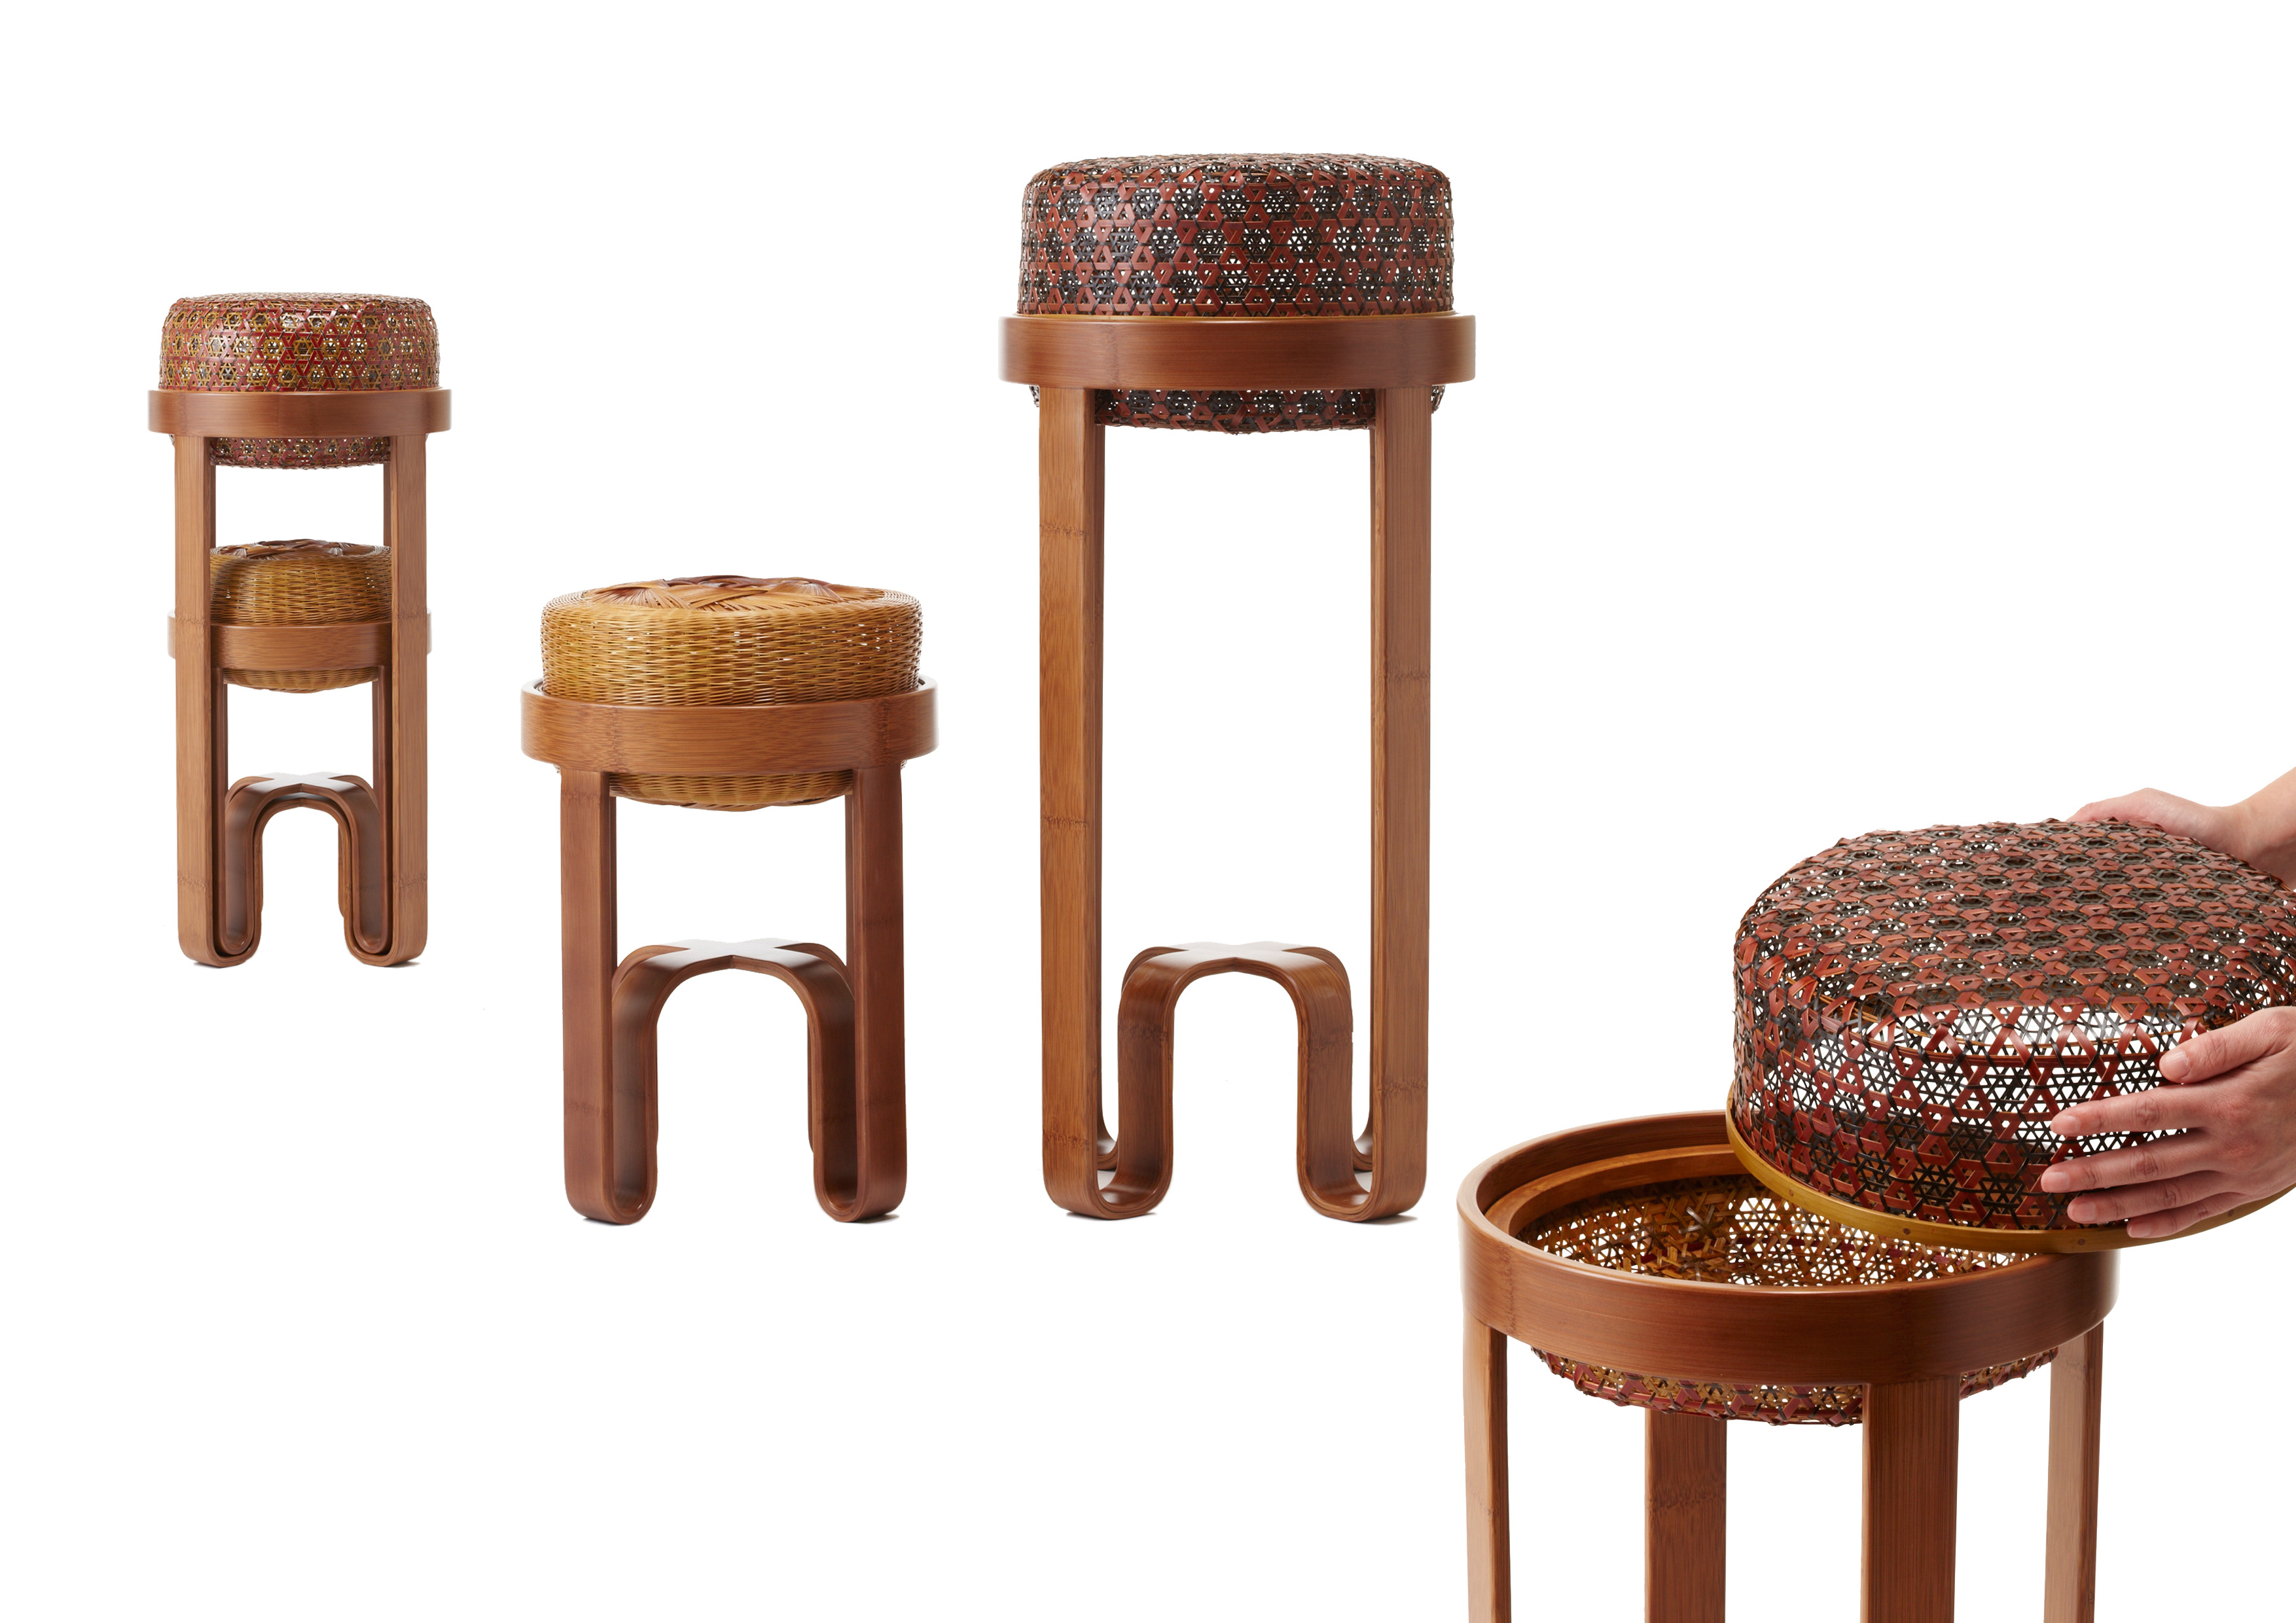 19 bamboo chair all300.jpg